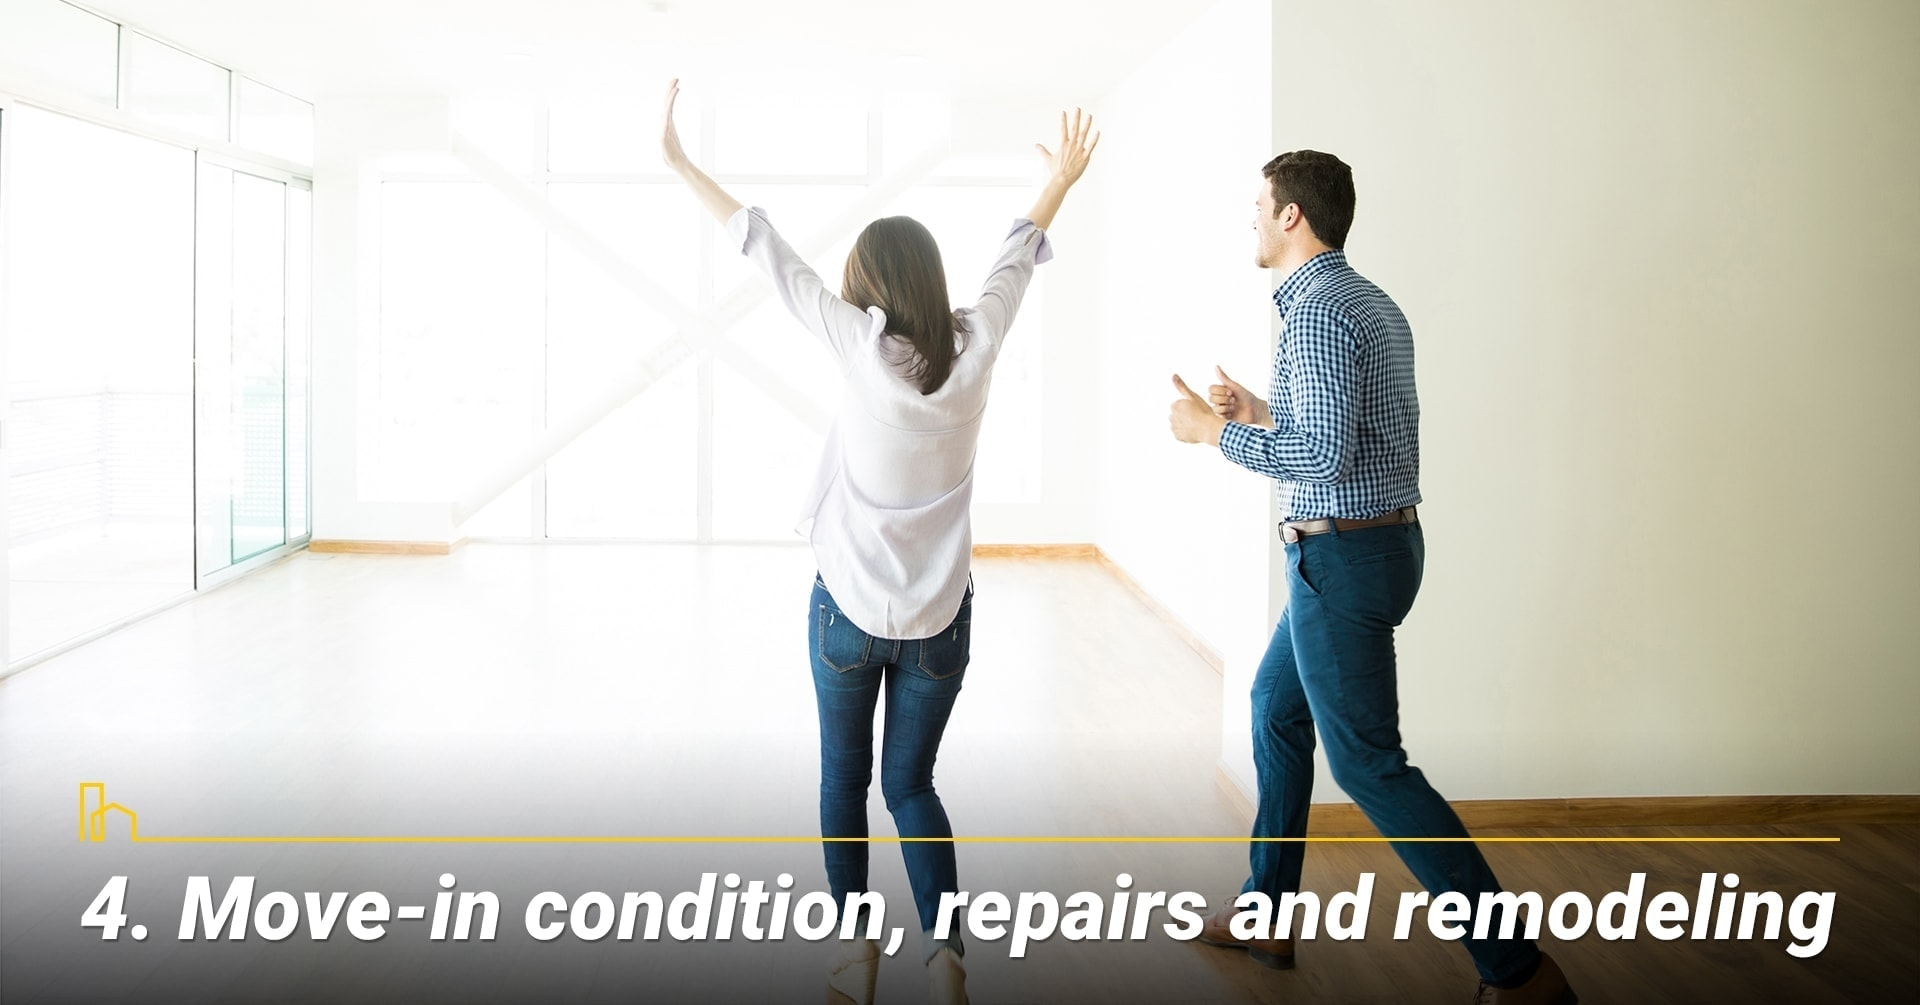 Move-in condition, repairs and remodeling